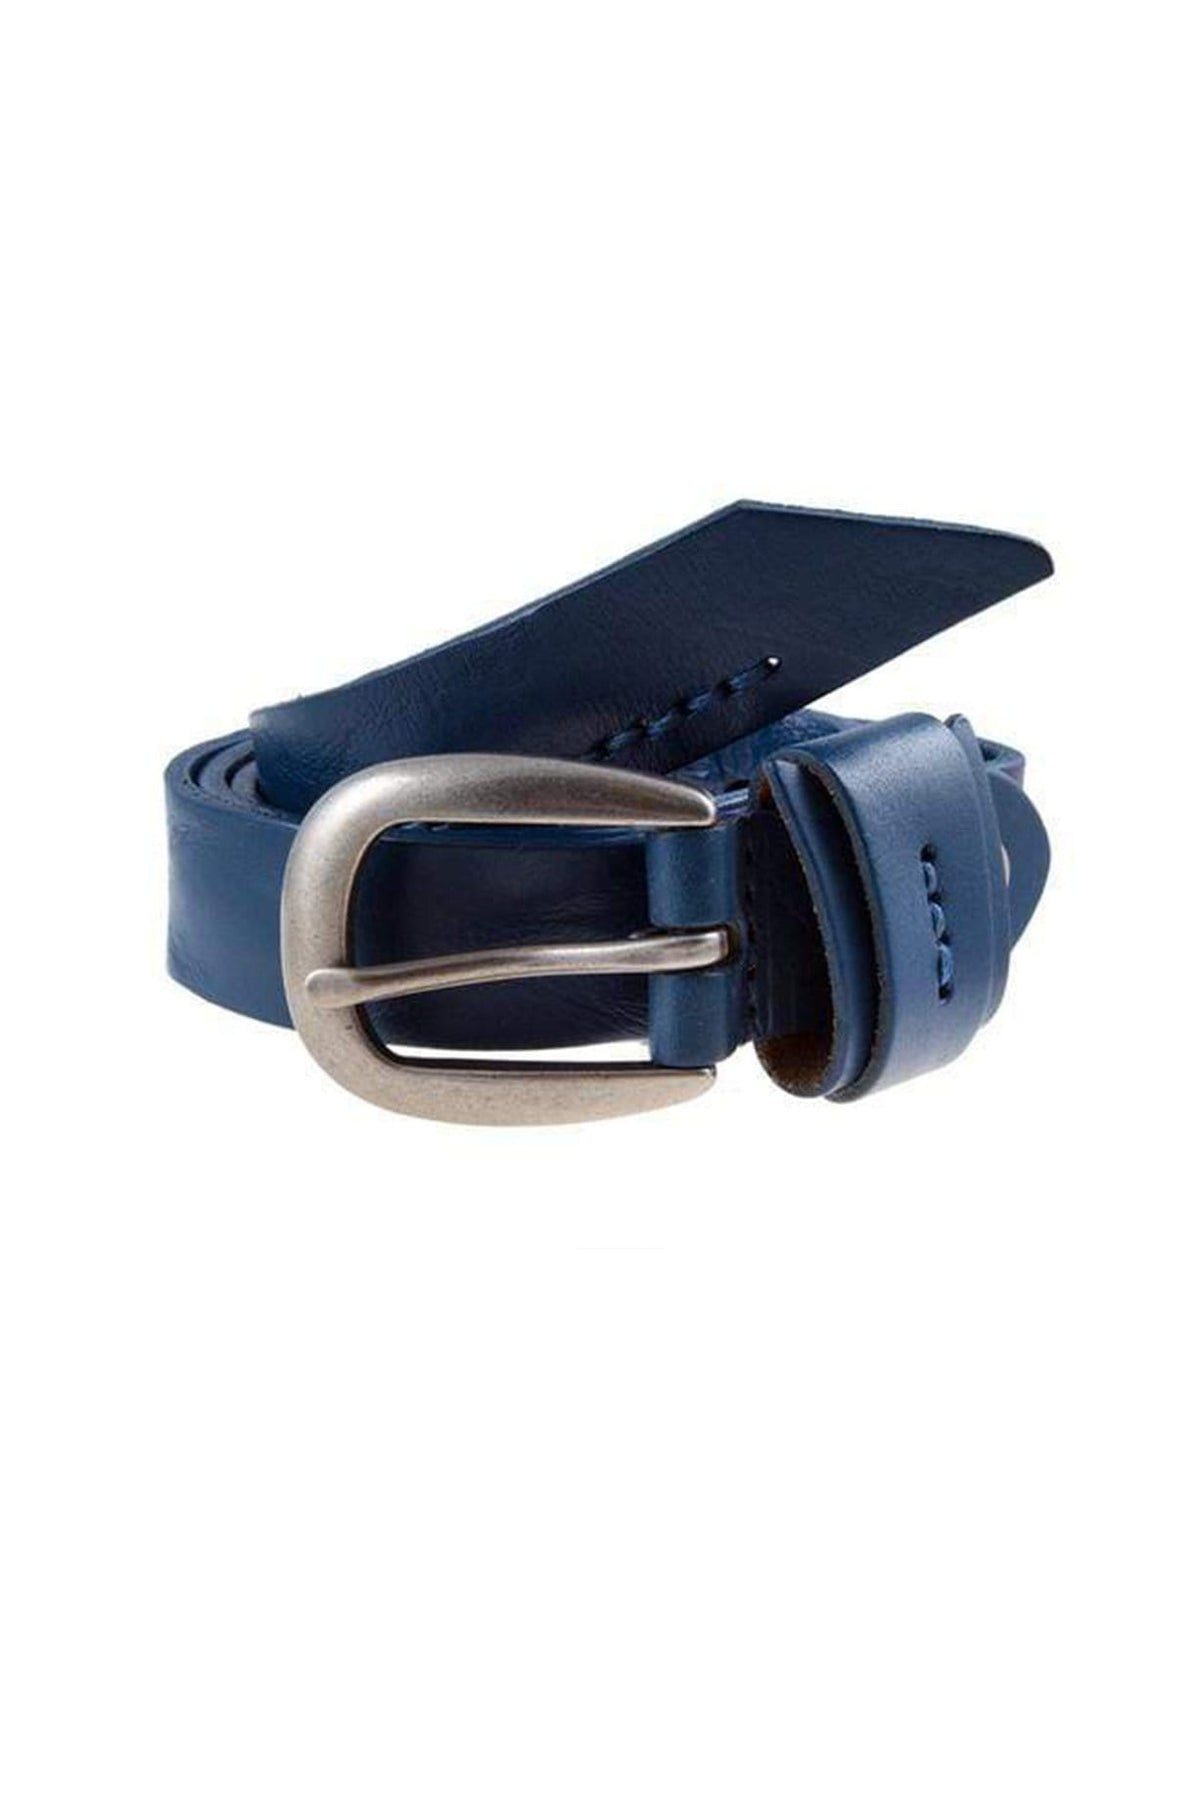 BELT Classic Genuine Leather Belt - Chloe Dao